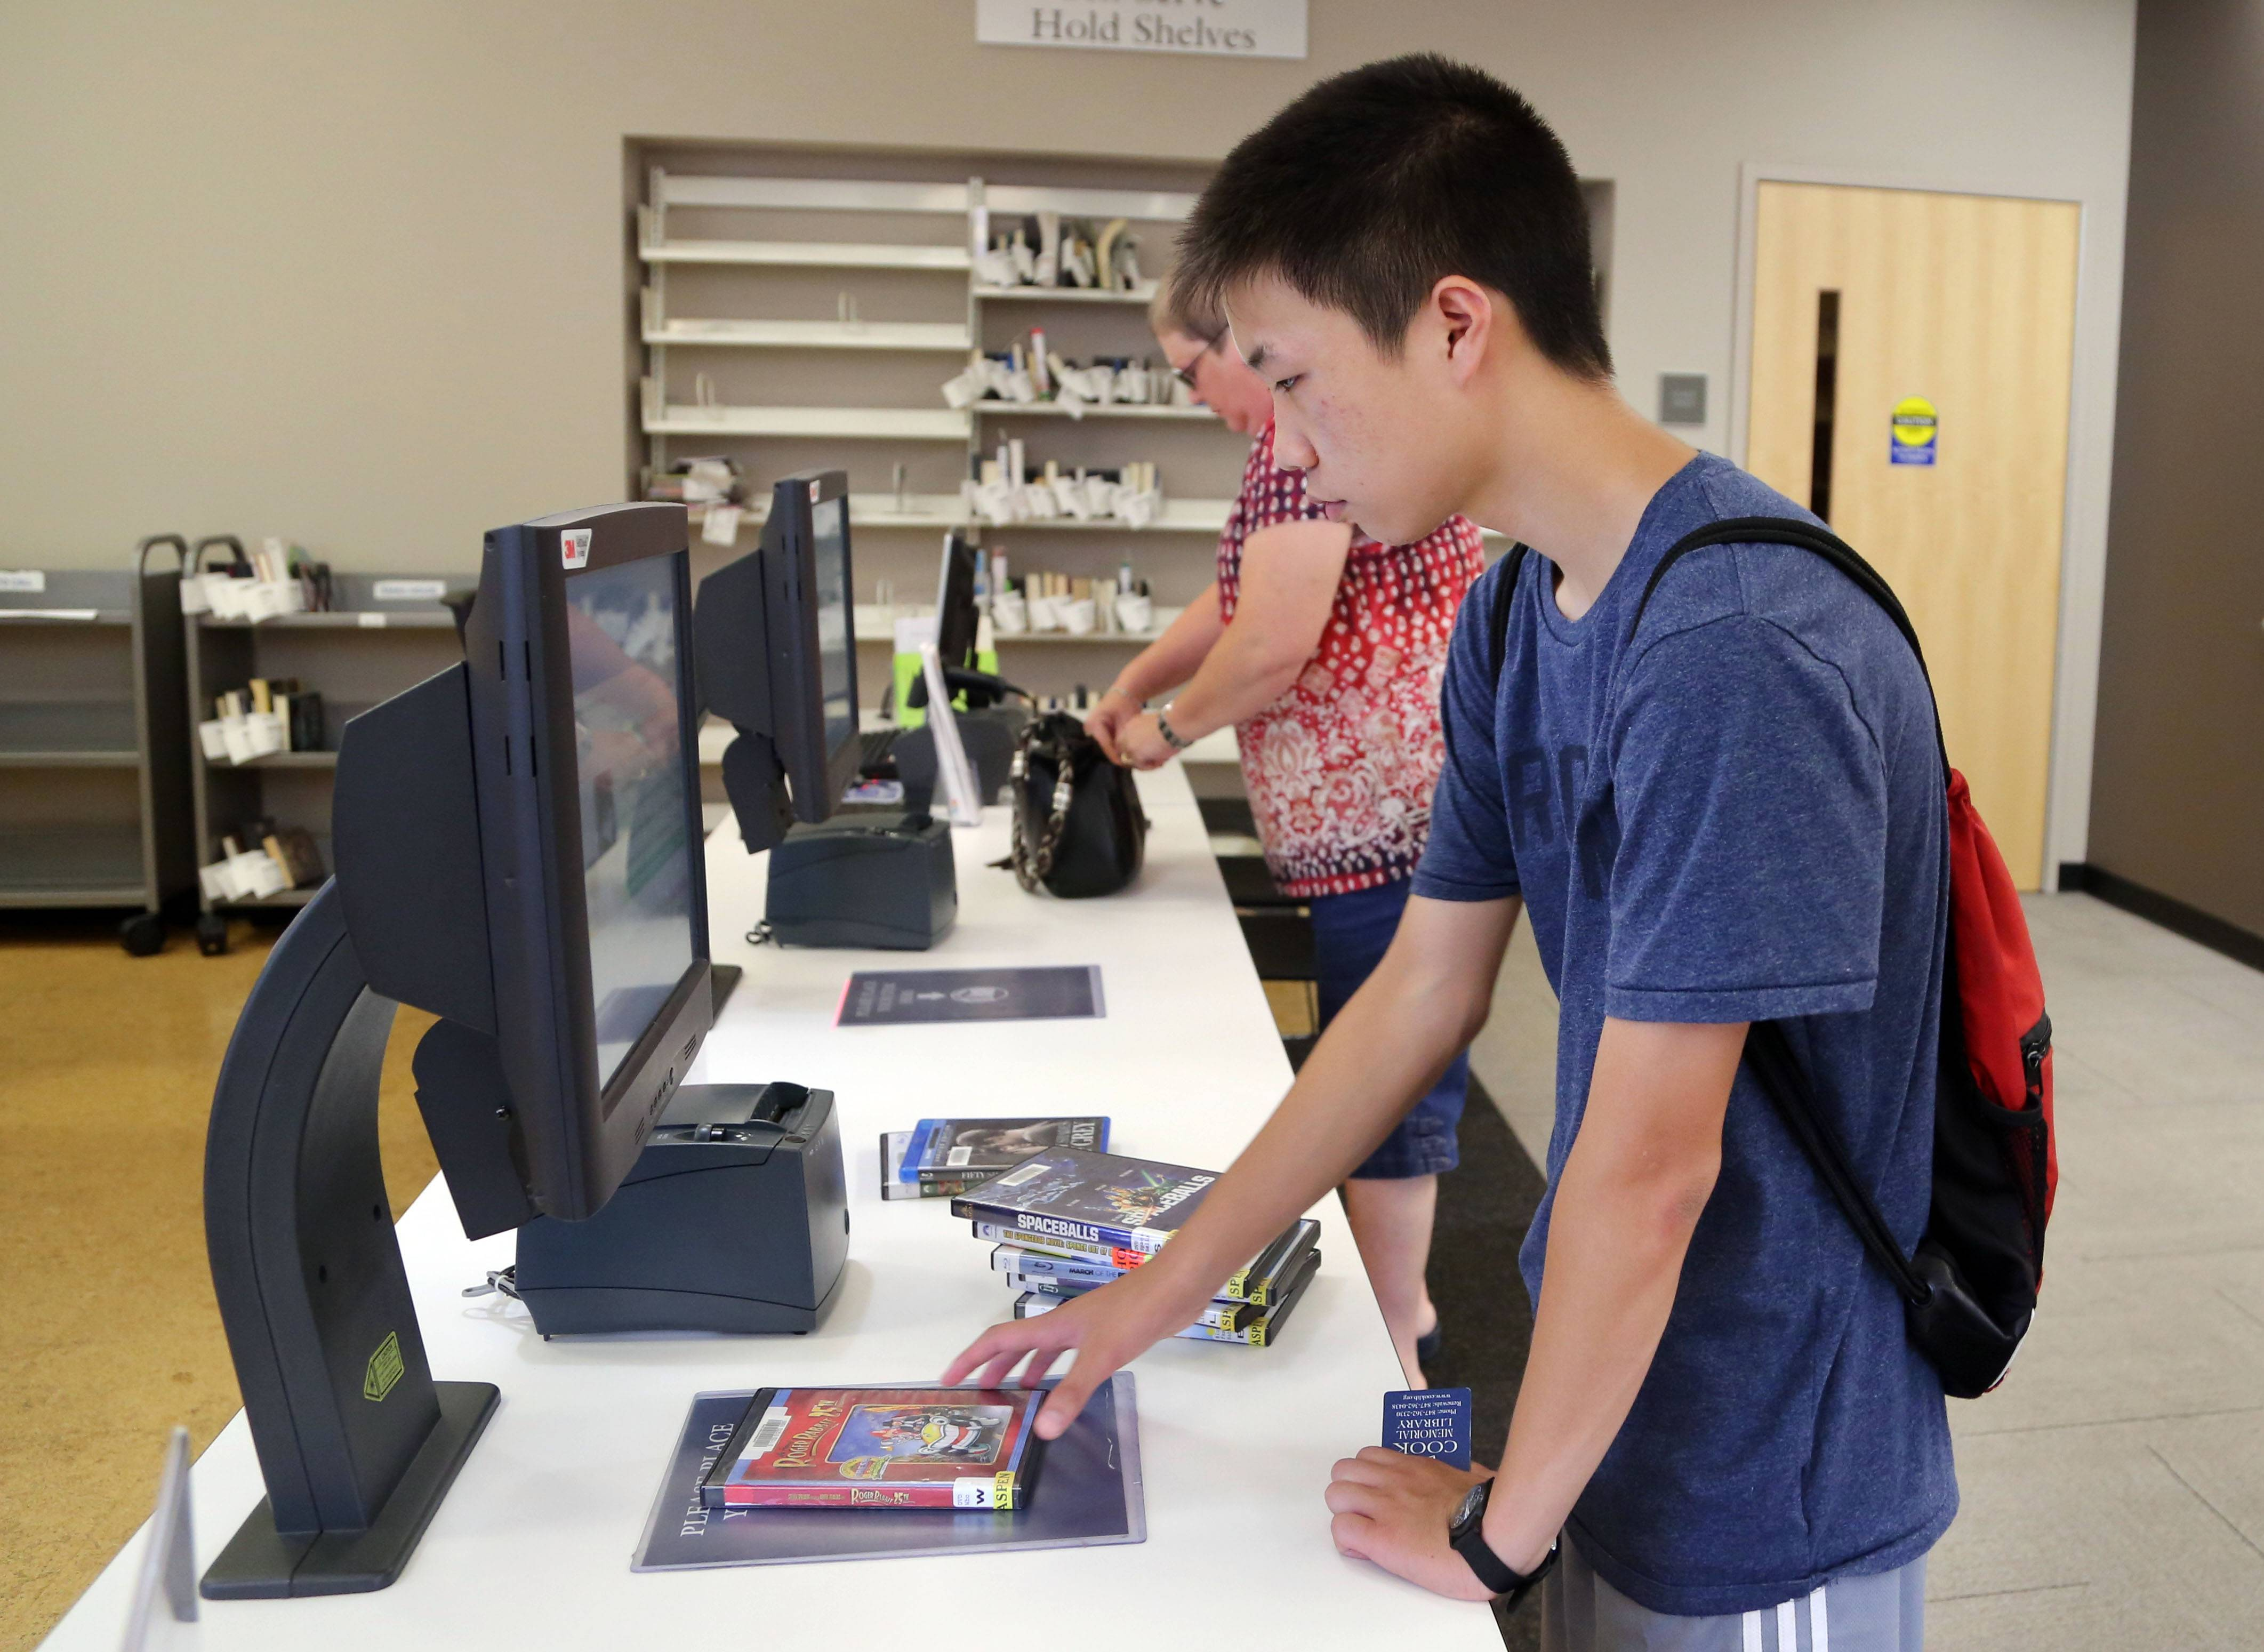 Matthew Huh, 14, of Vernon Hills checks out materials at the Aspen Drive Library.